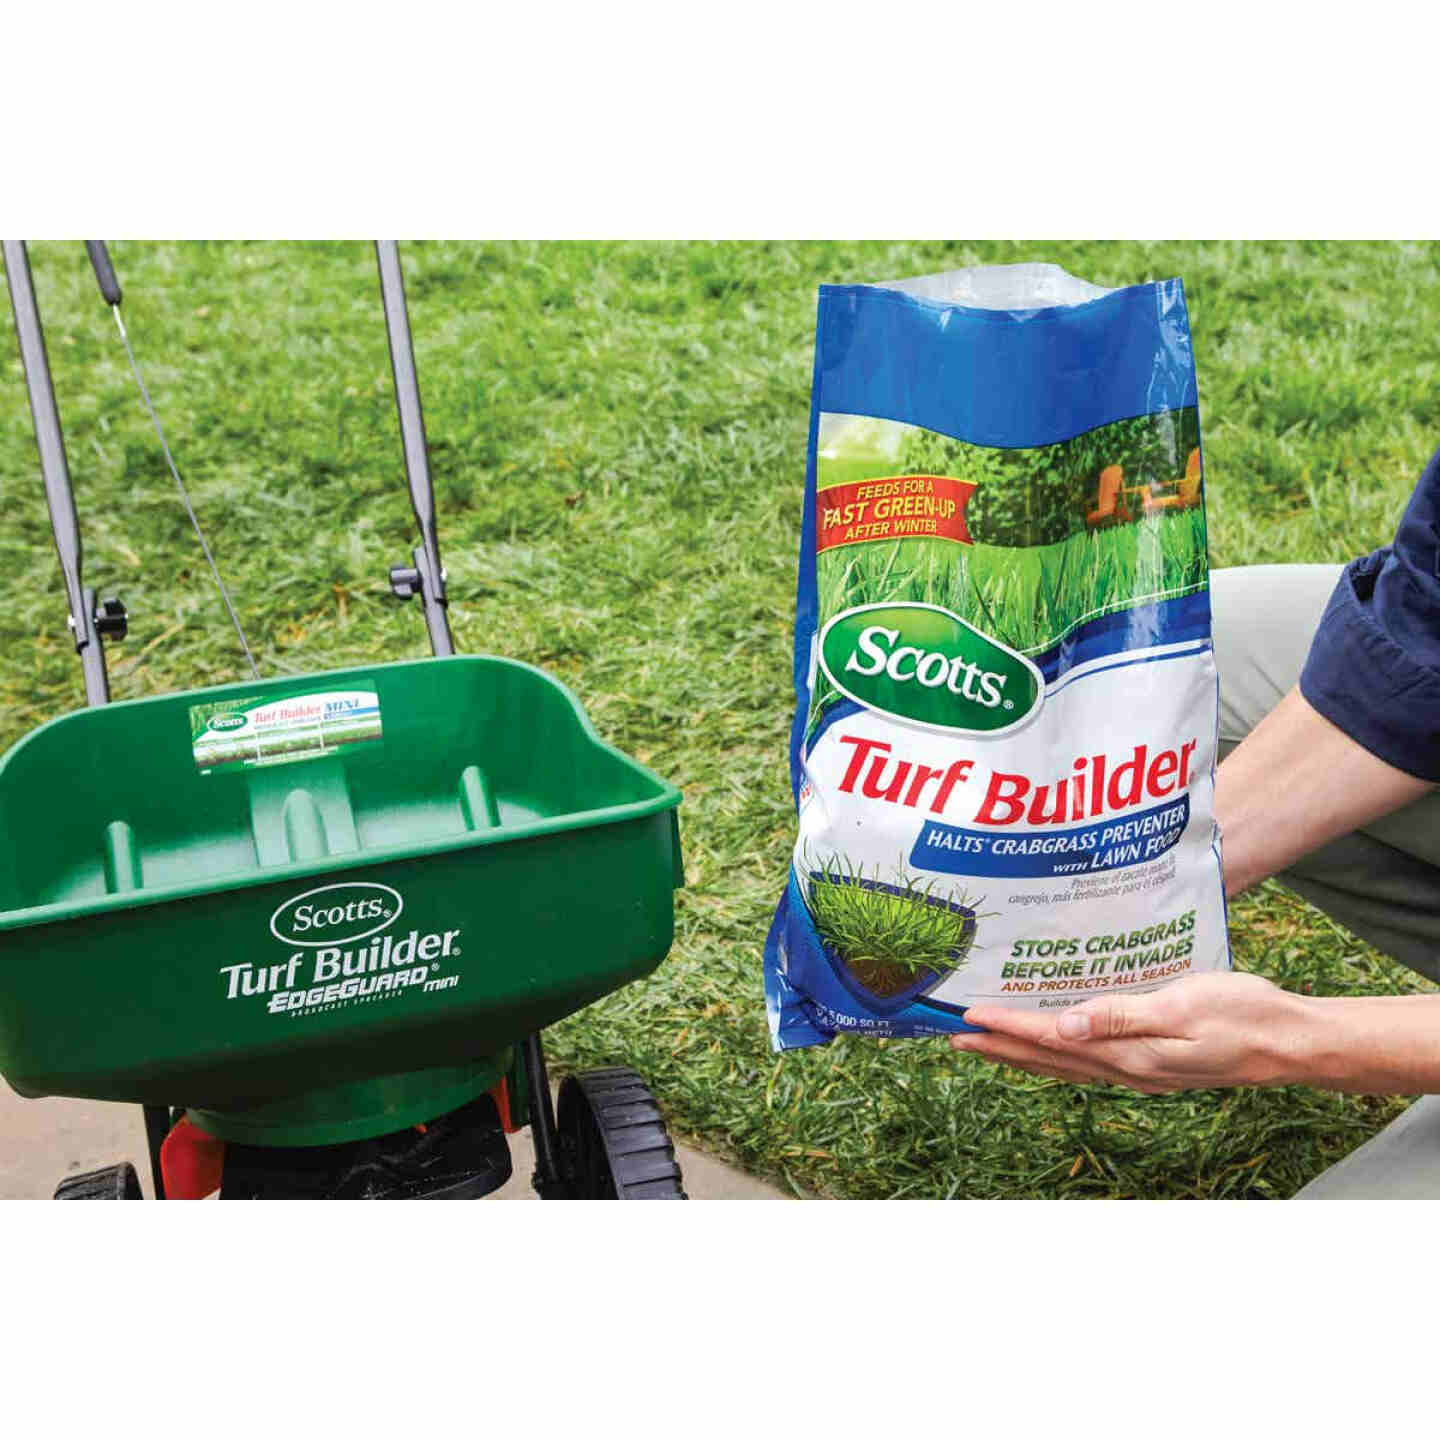 Scotts Turf Builder 13.35 Lb. 5000 Sq. Ft. 30-0-4 Lawn Fertilizer with Halts Crabgrass Preventer Image 2